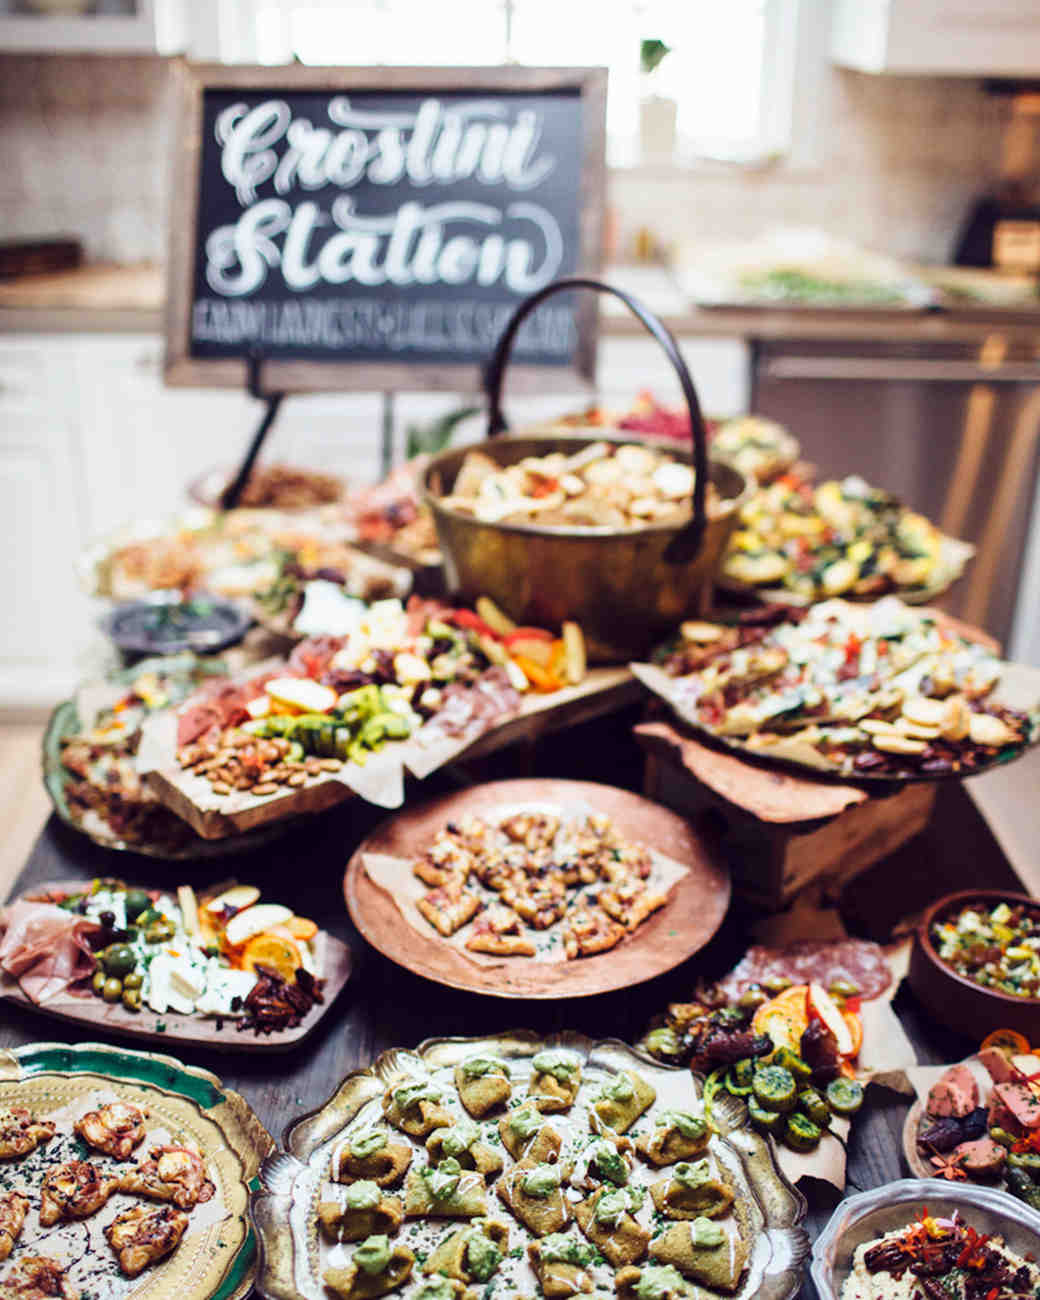 25 Unexpected Wedding Food Ideas Your Guests Will Love | Martha ...